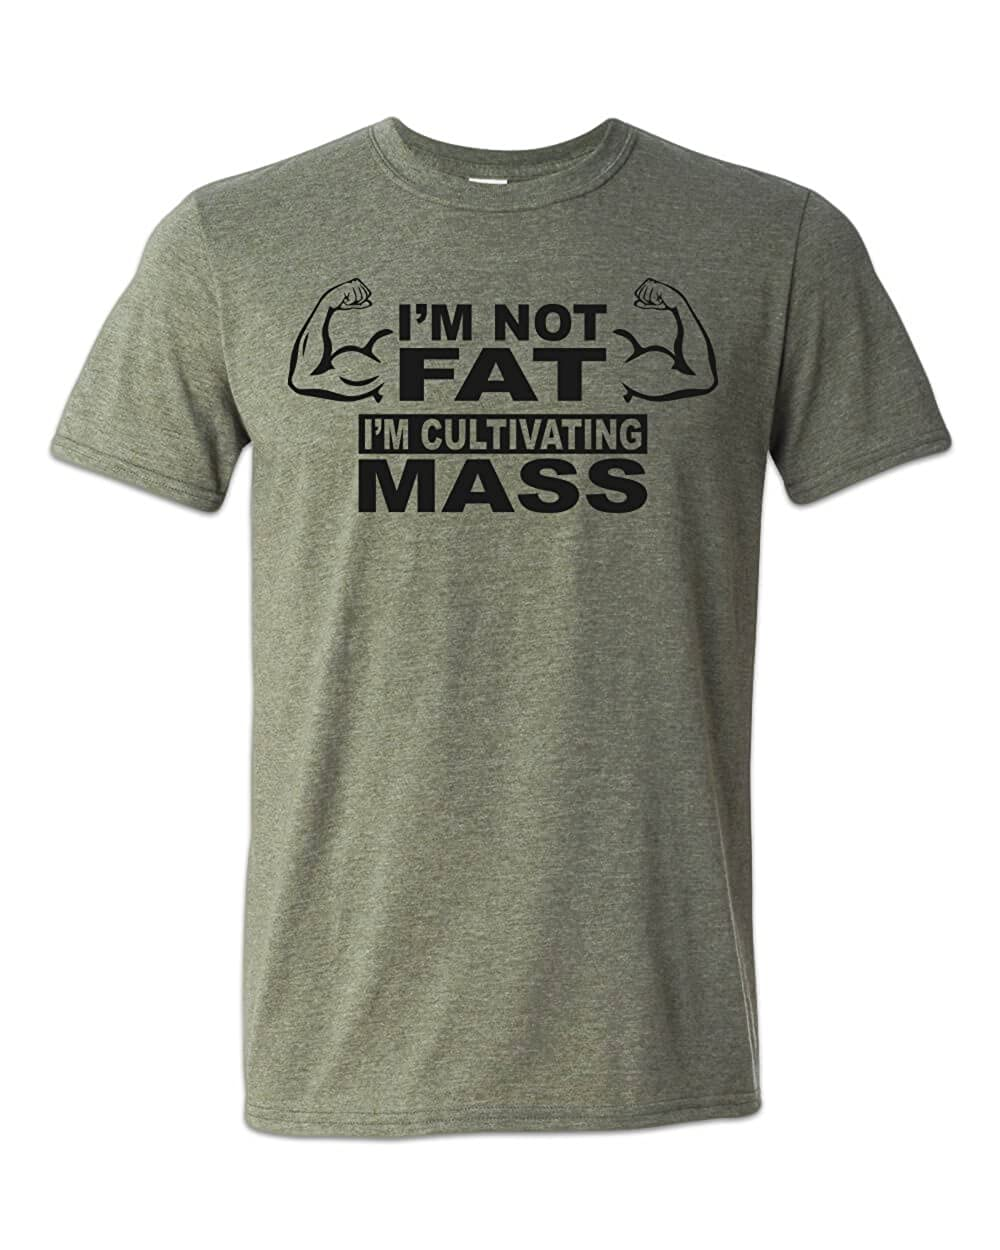 Zepp Tees Im Cultivating Mass T-Shirt Funny Weight Lifting Guy